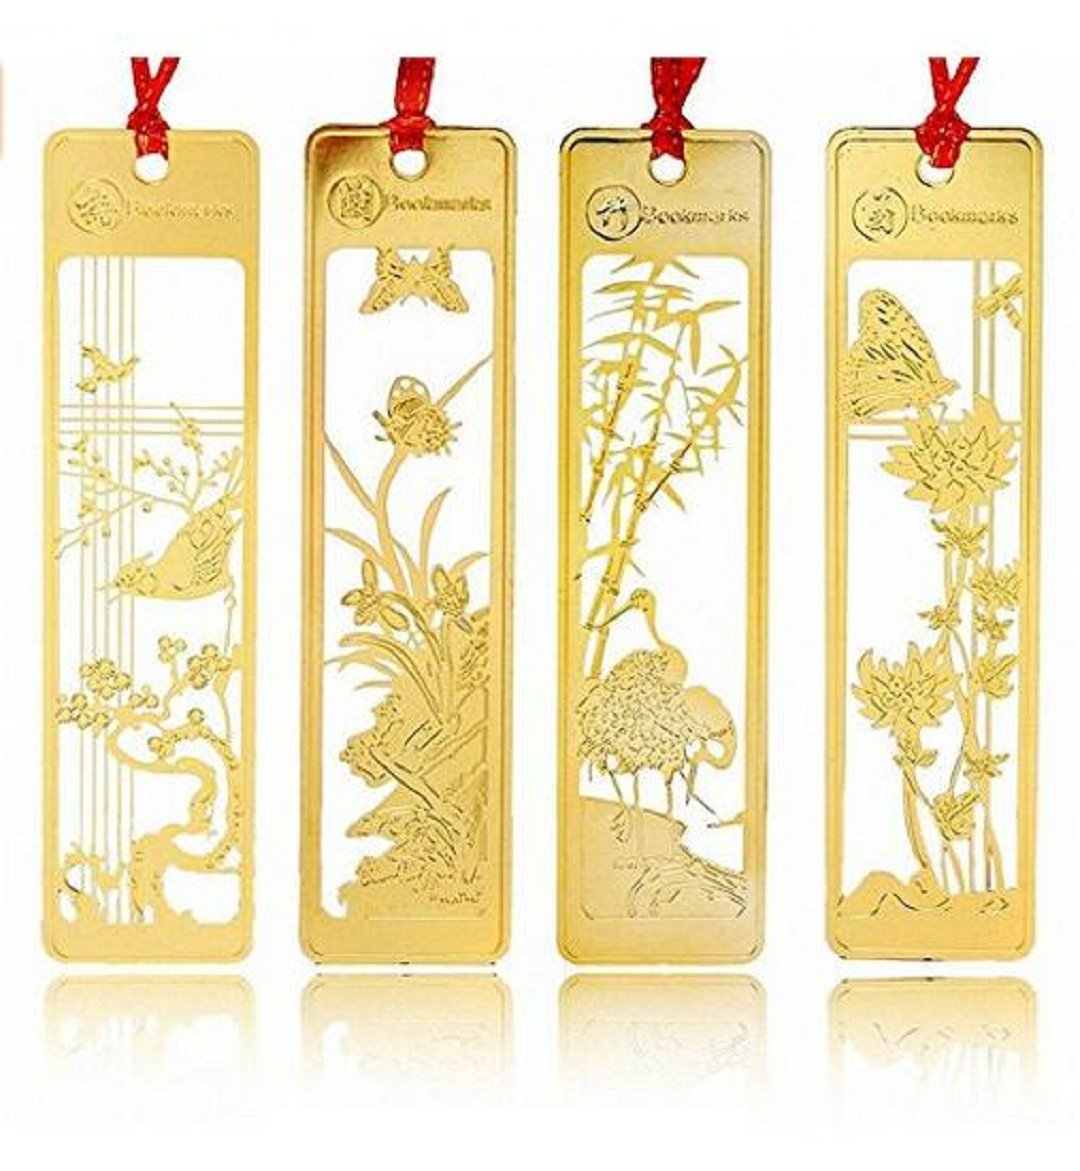 Wendin Chinese Style Metal flower Bookmarks 4 Pcs delicacy Golden Hollow Mini Creative Book Mark,Plum flower(mei),Orchid (lan),Bamboo(zhu),Chrysanthemum (ju)